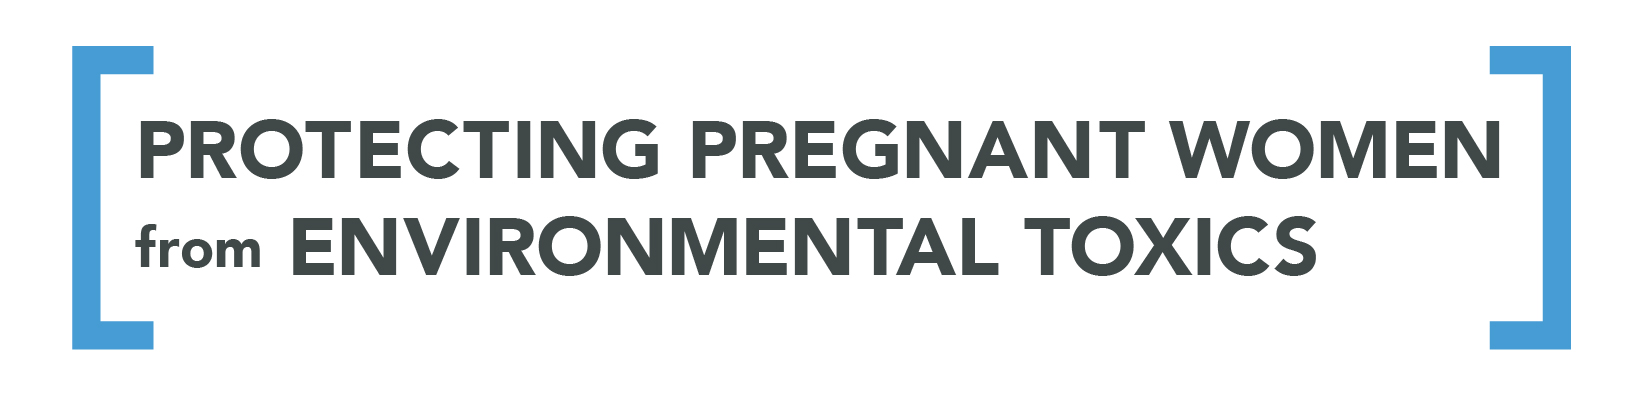 Protecting Pregnant Women from Environmental Toxics